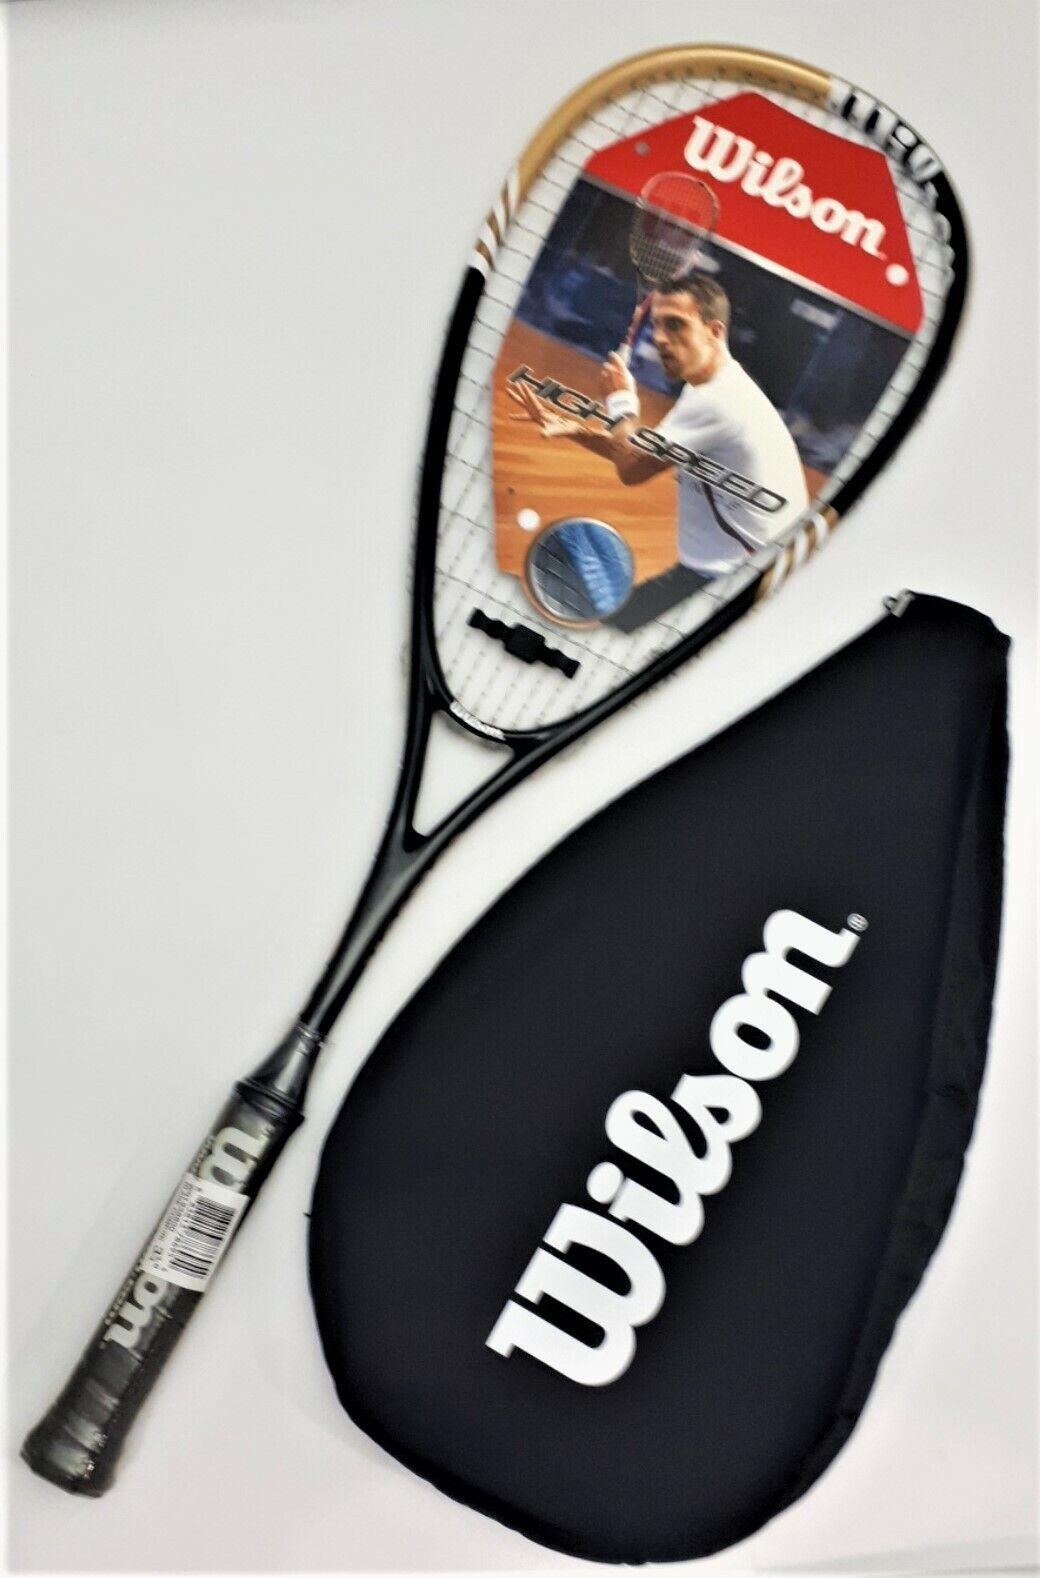 Wilson Blade Comp Squash Schläger High Speed Performance Power Squashracket